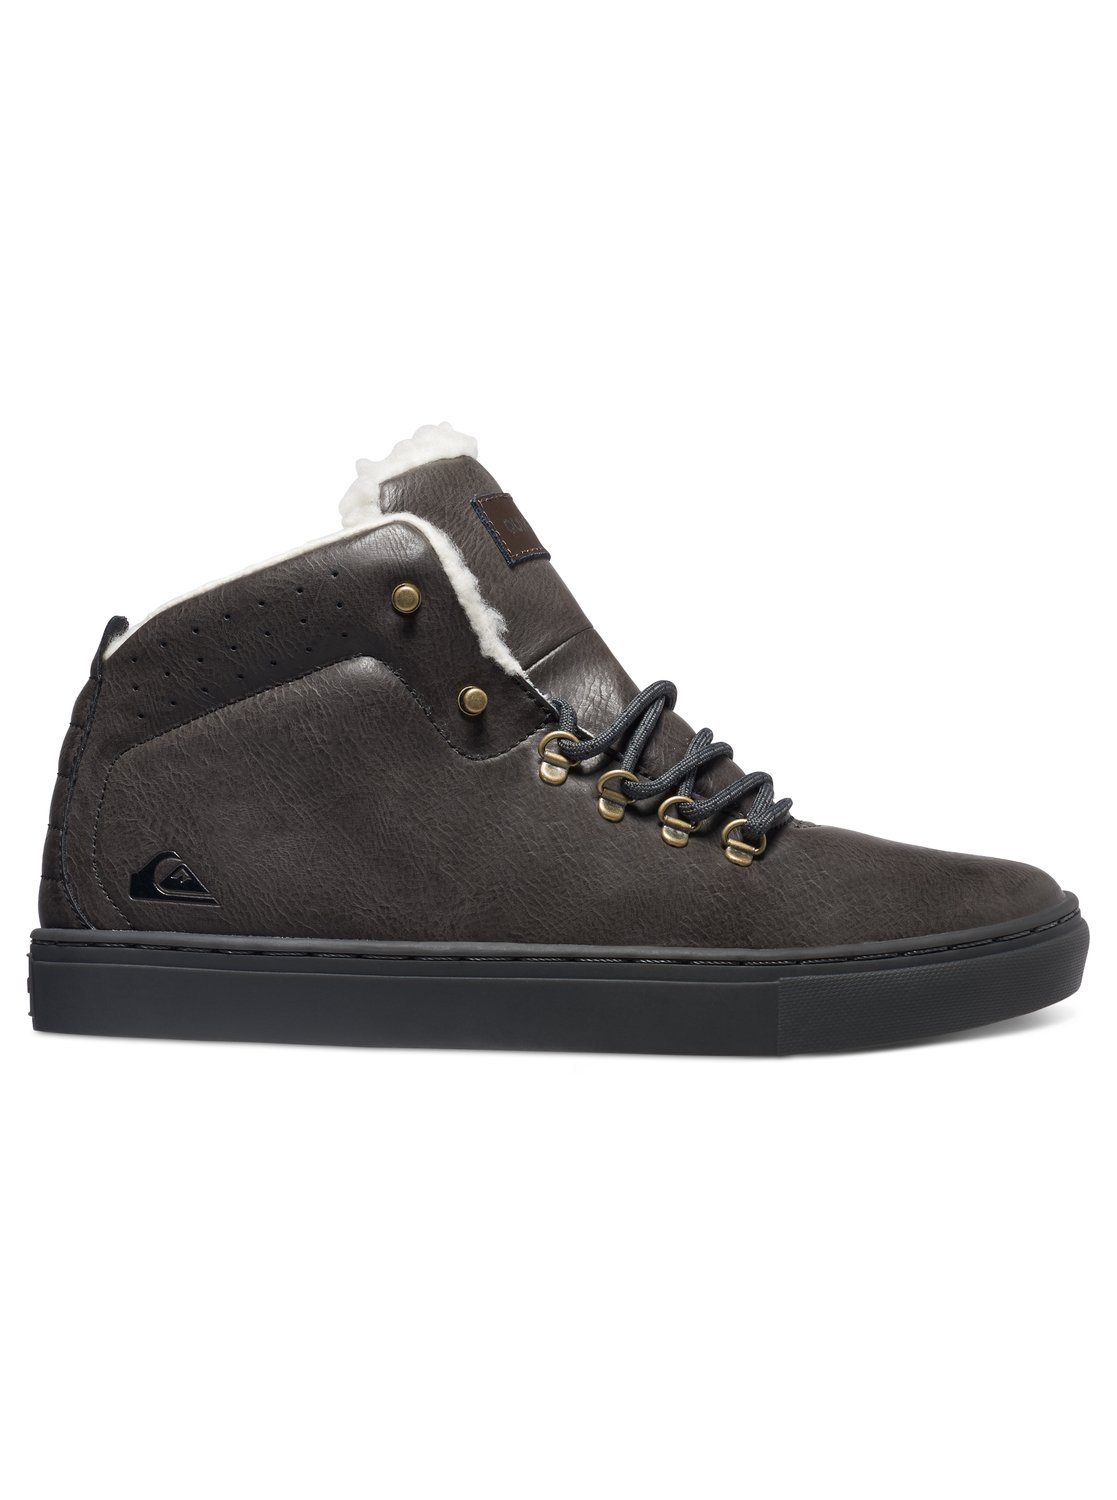 Quiksilver Jax Deluxe Hautes Aqys100017 Mi Chaussures awXYqz